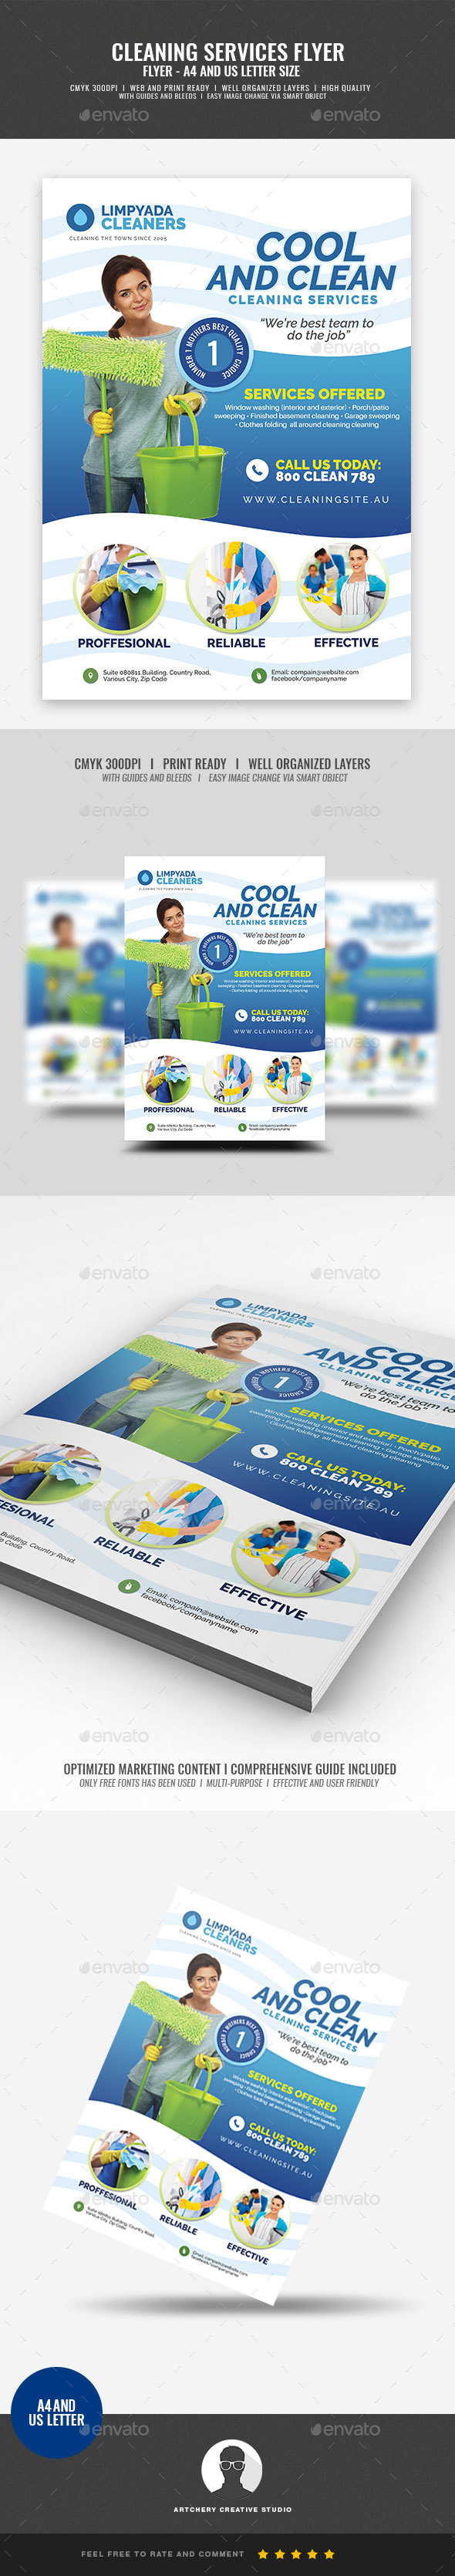 Commercial Cleaning Company Flyer - Corporate Flyers